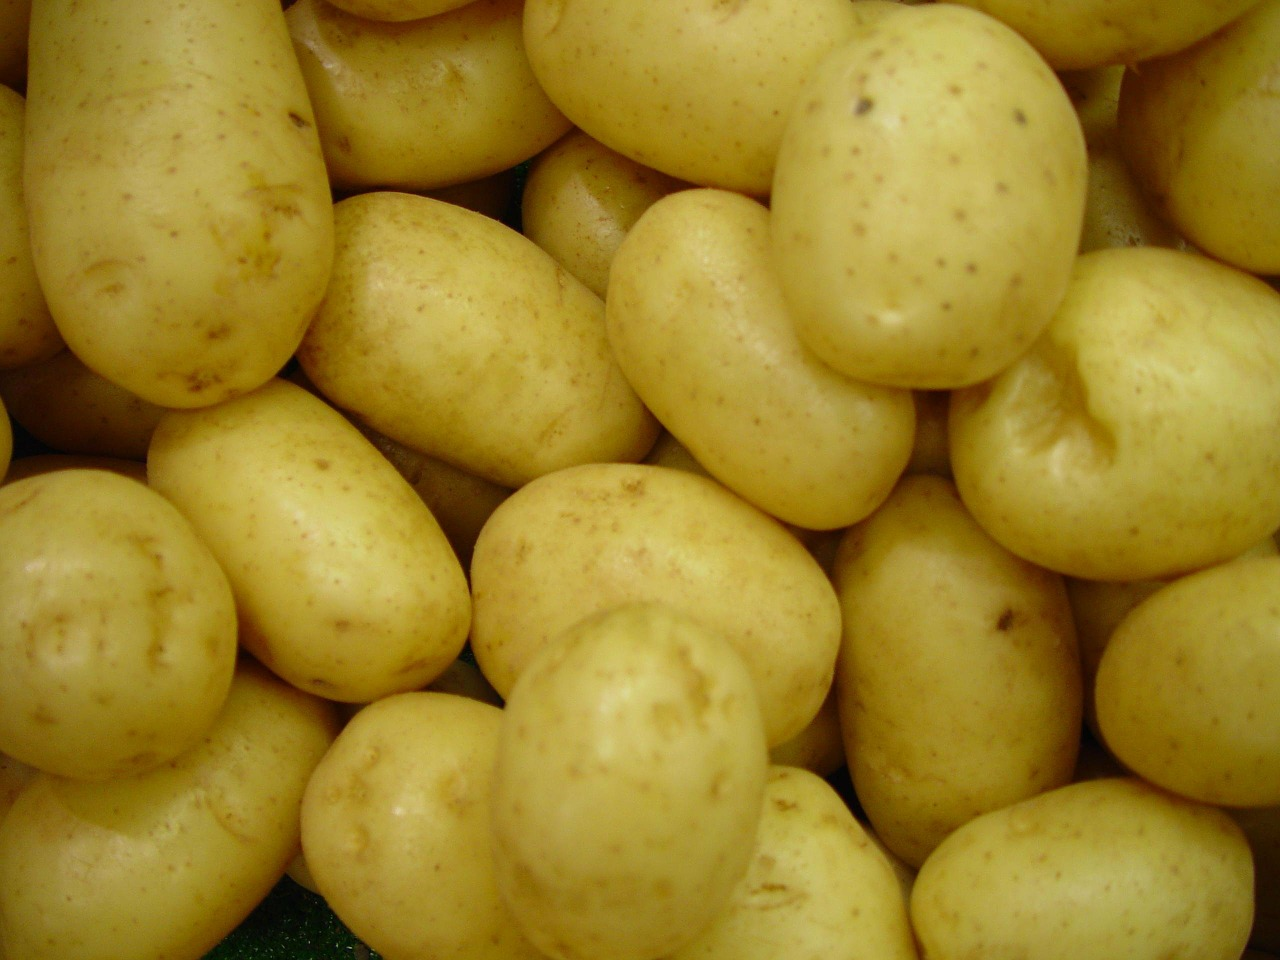 potatoes,vegetables,raw,uncooked,frisch,vegetarian,potato,food,ingredient,eat,root,free pictures, free photos, free images, royalty free, free illustrations, public domain